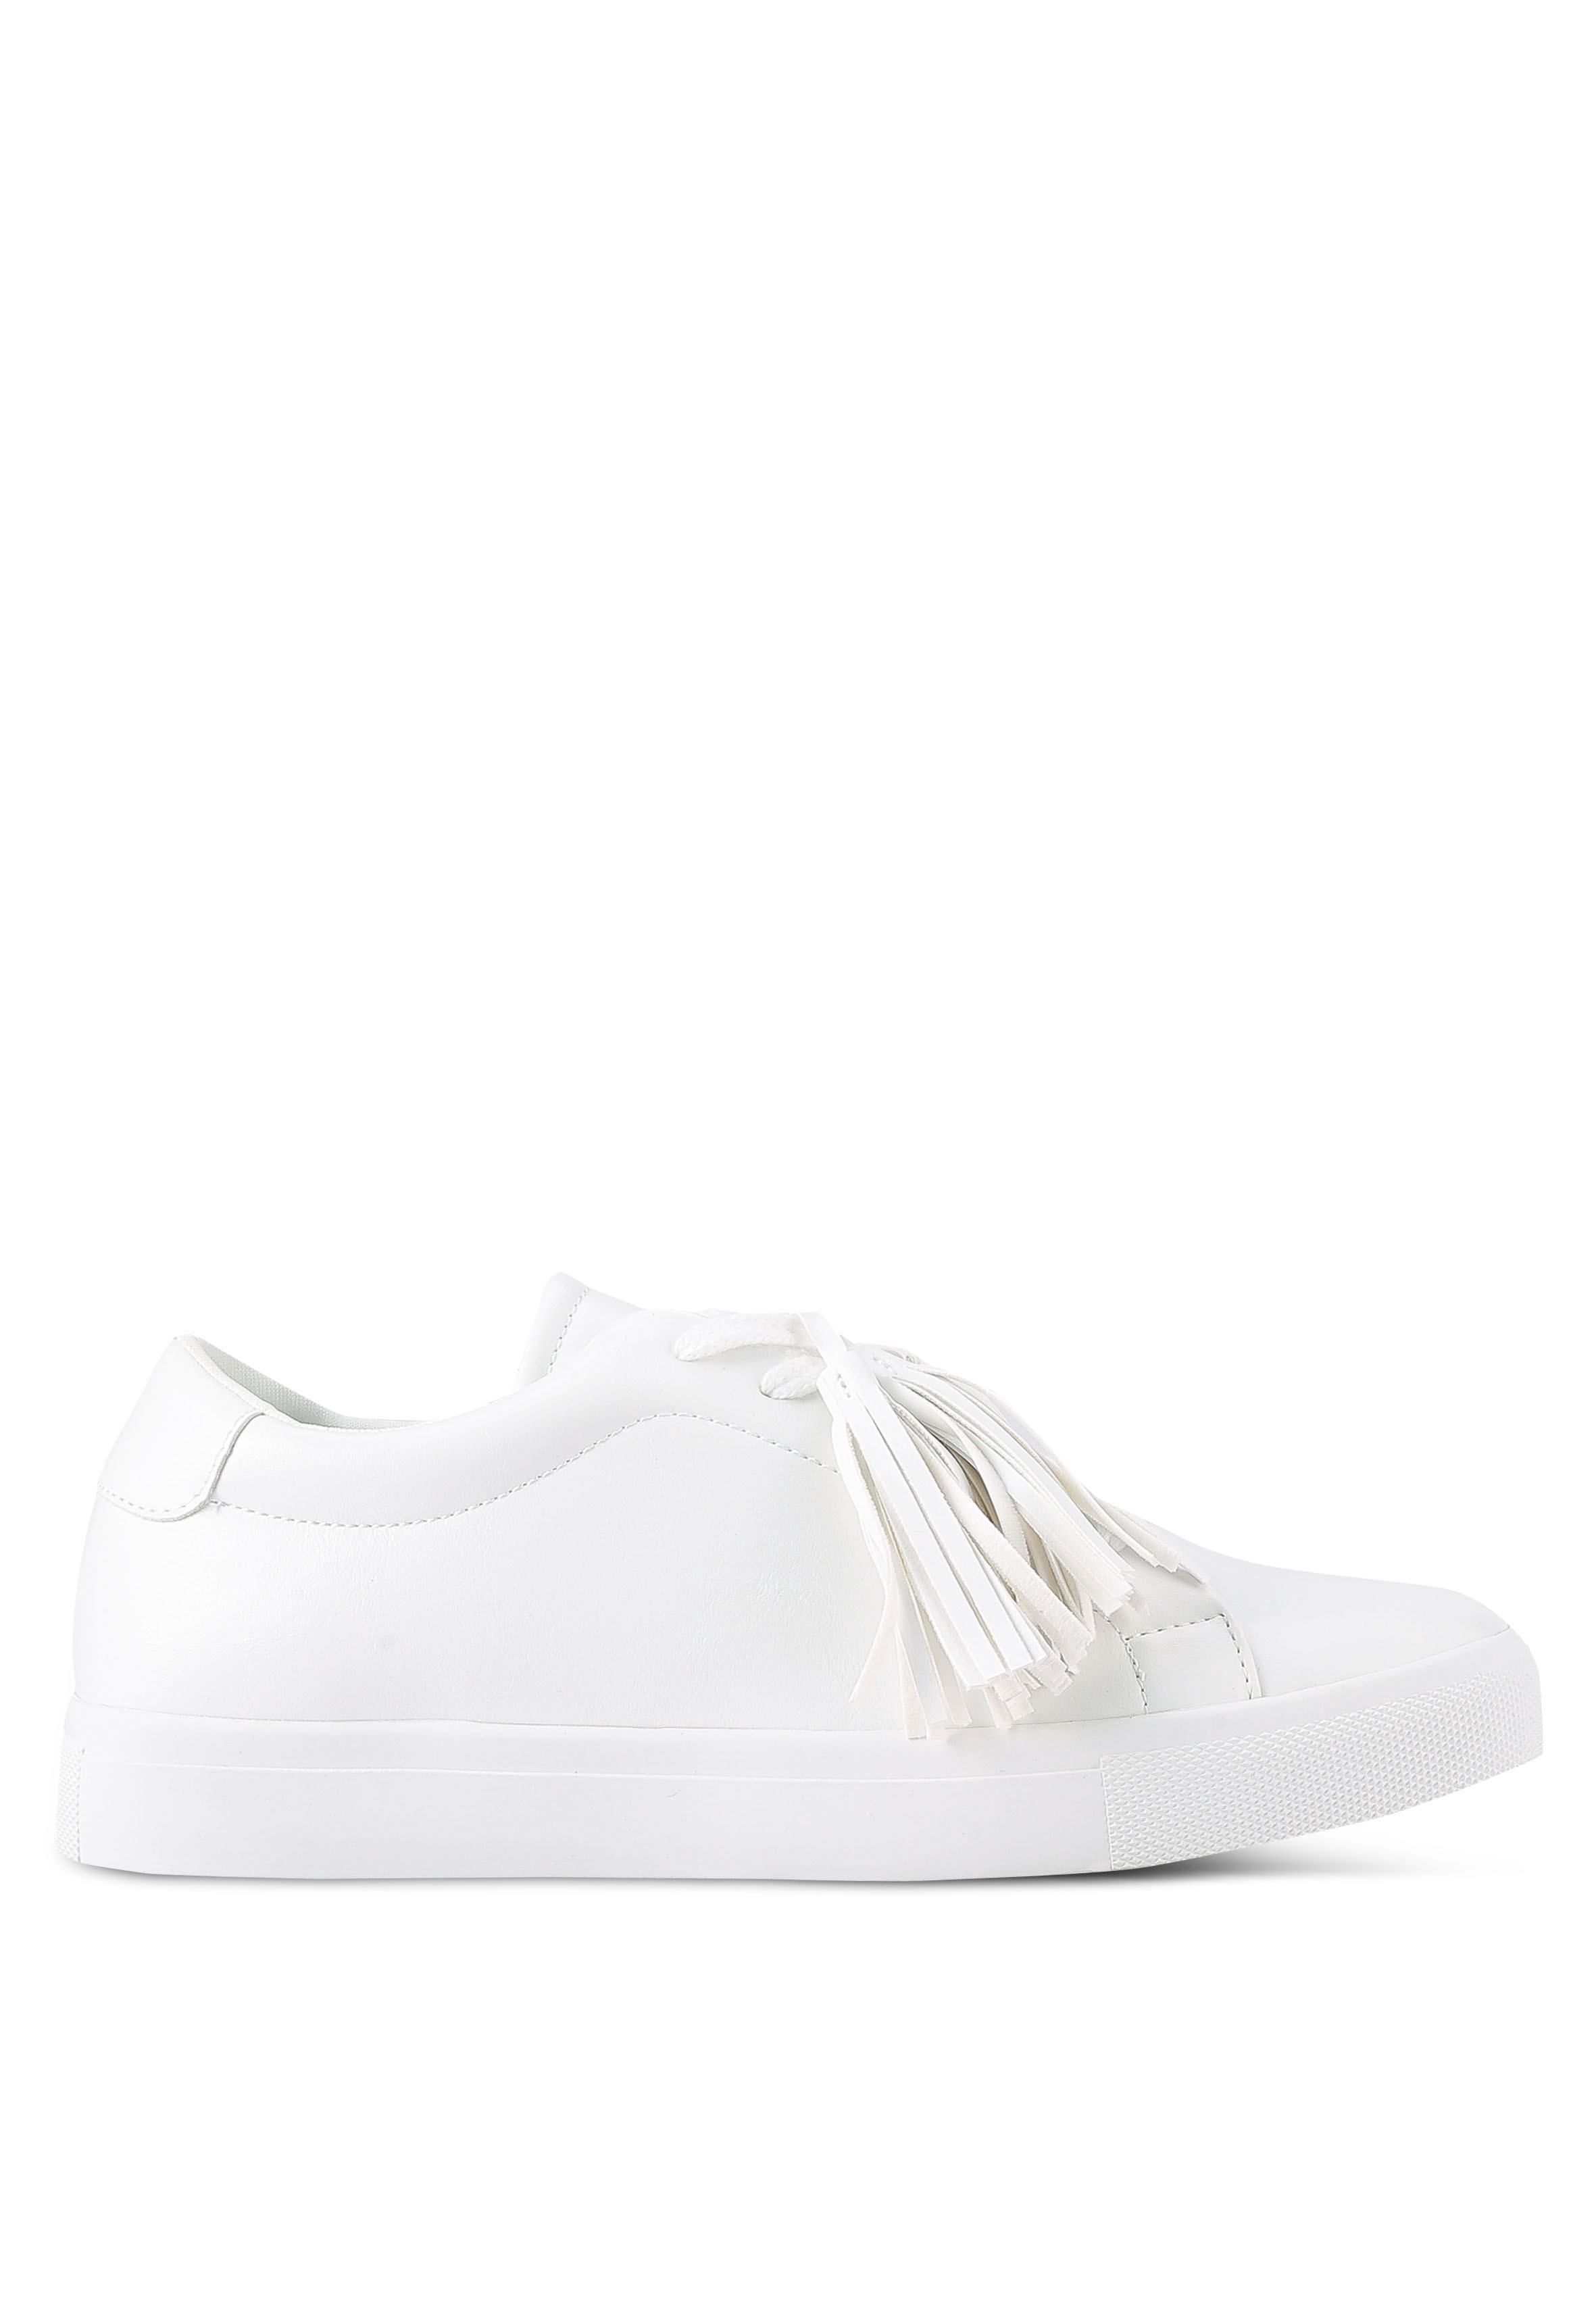 8 Ways To Wear White Sneakers. Here's